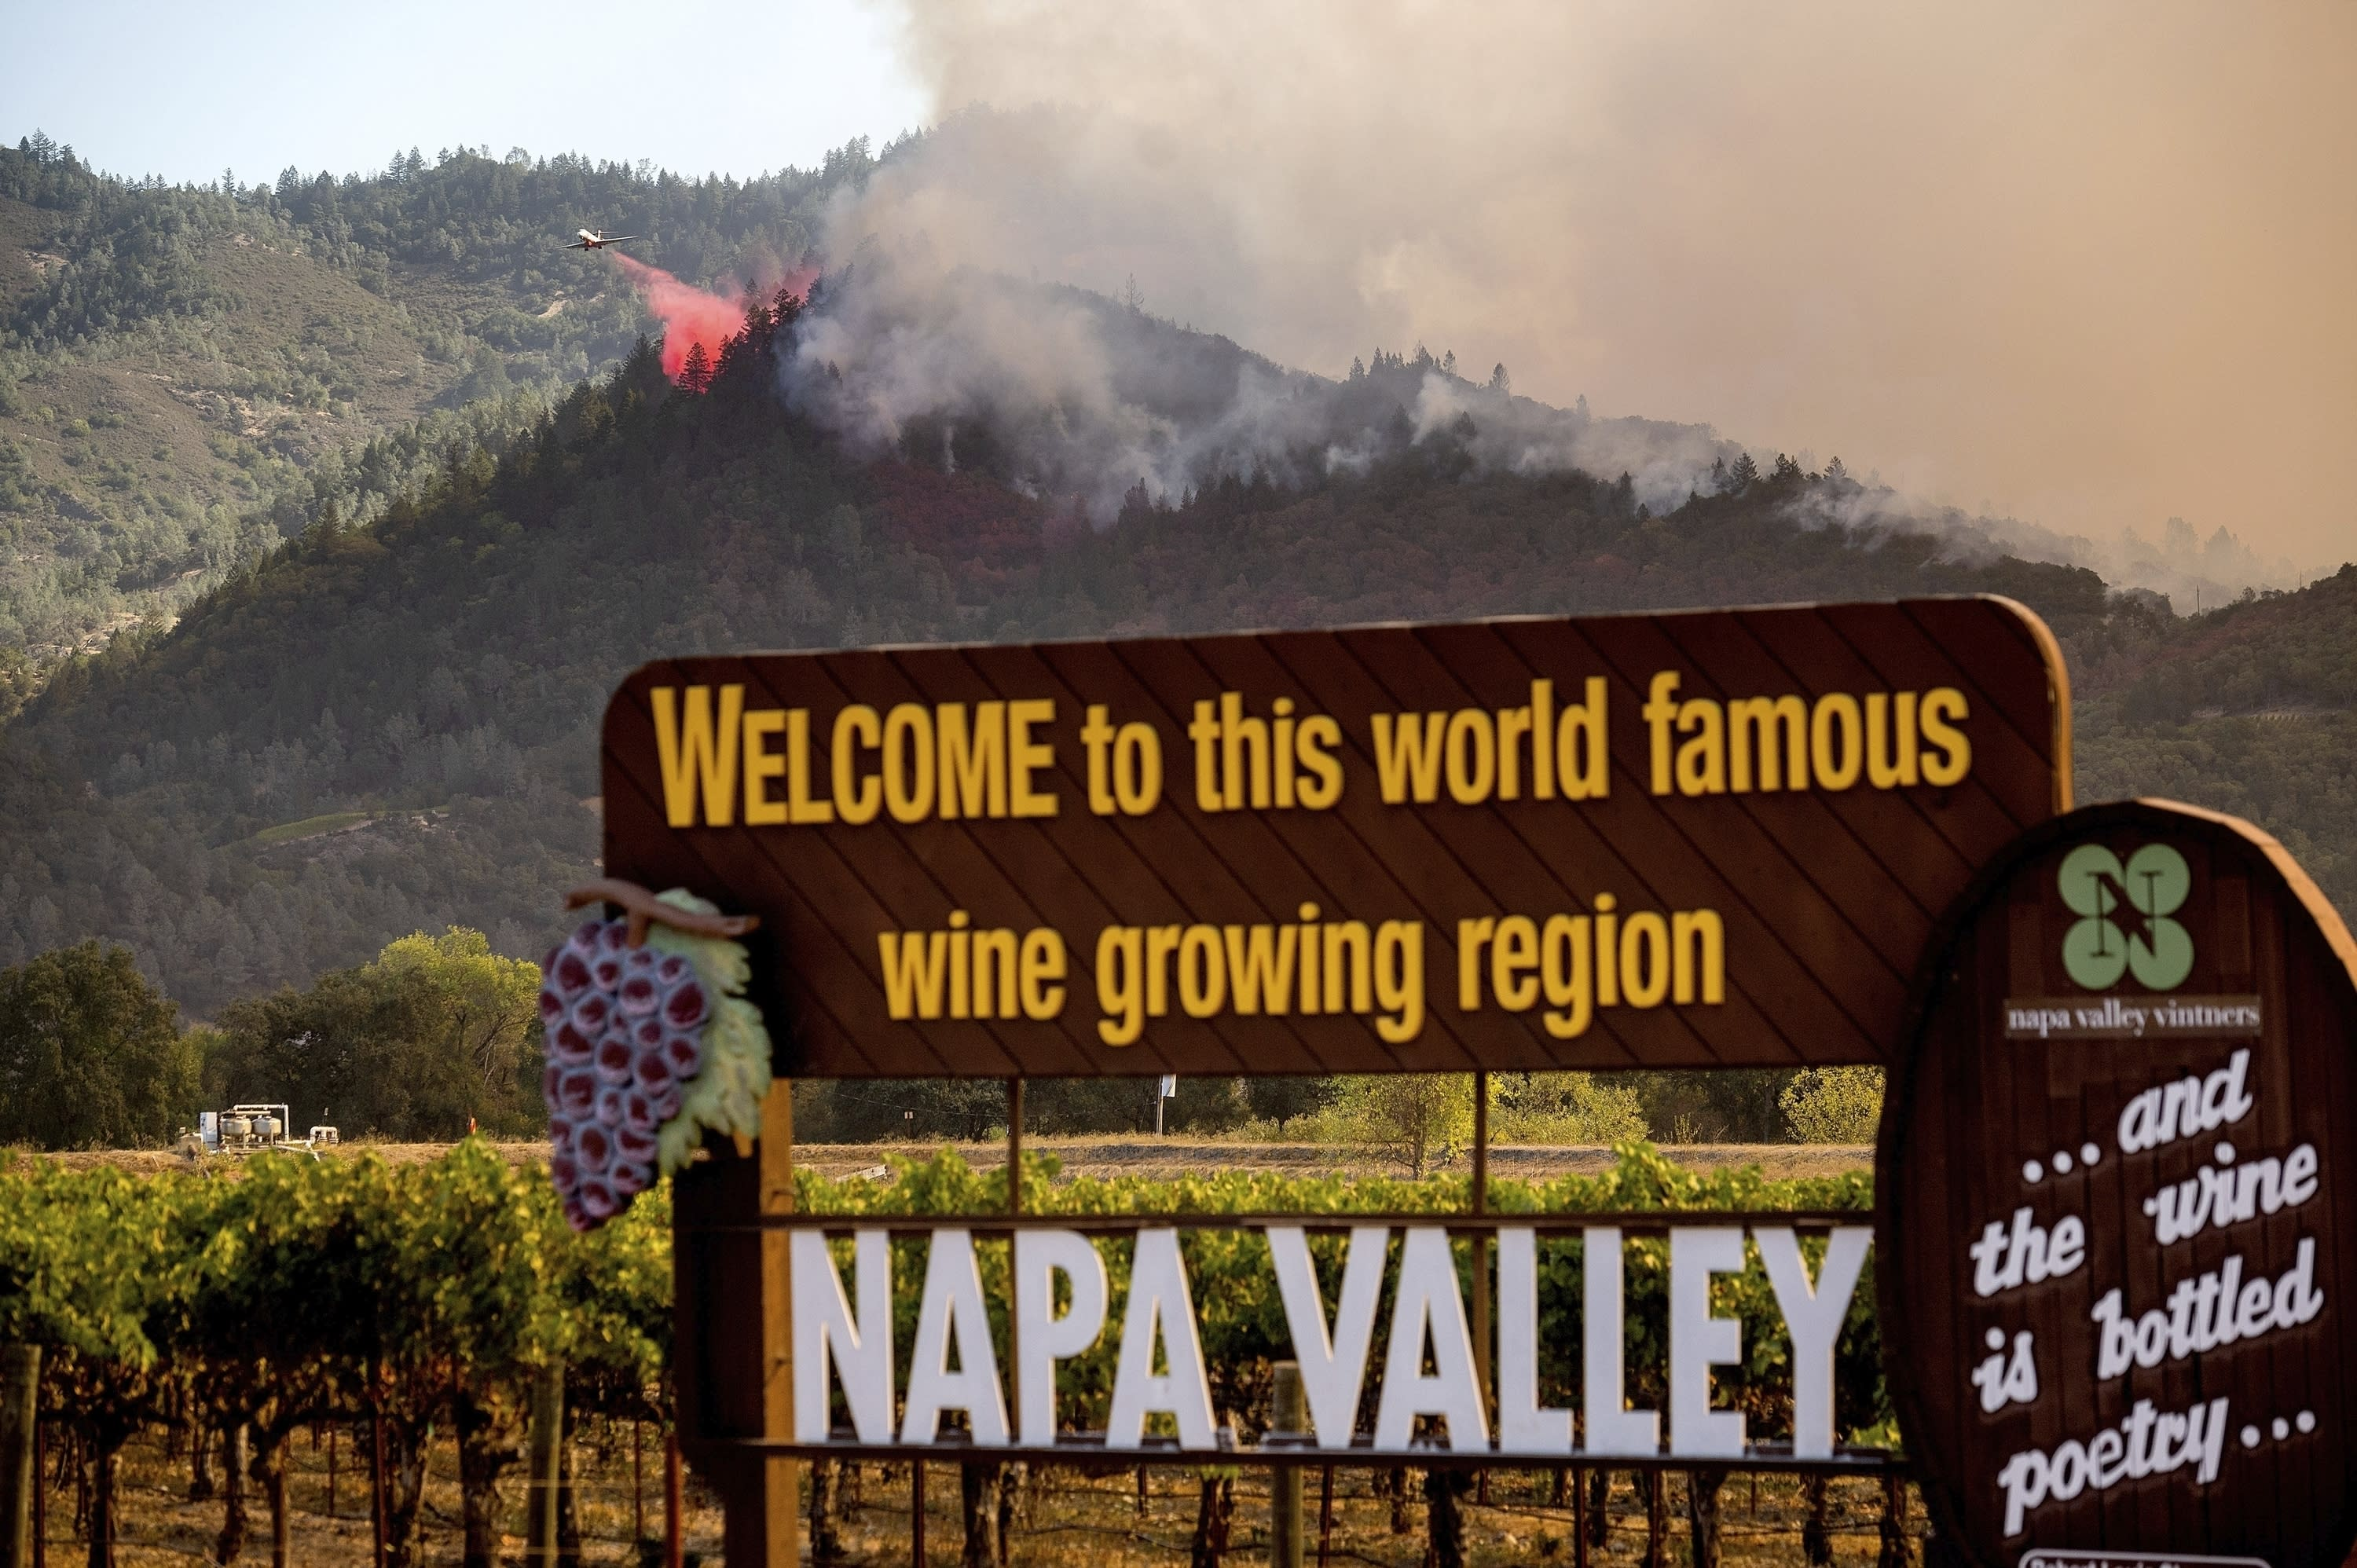 California wine country adapting to annual wildfire threat